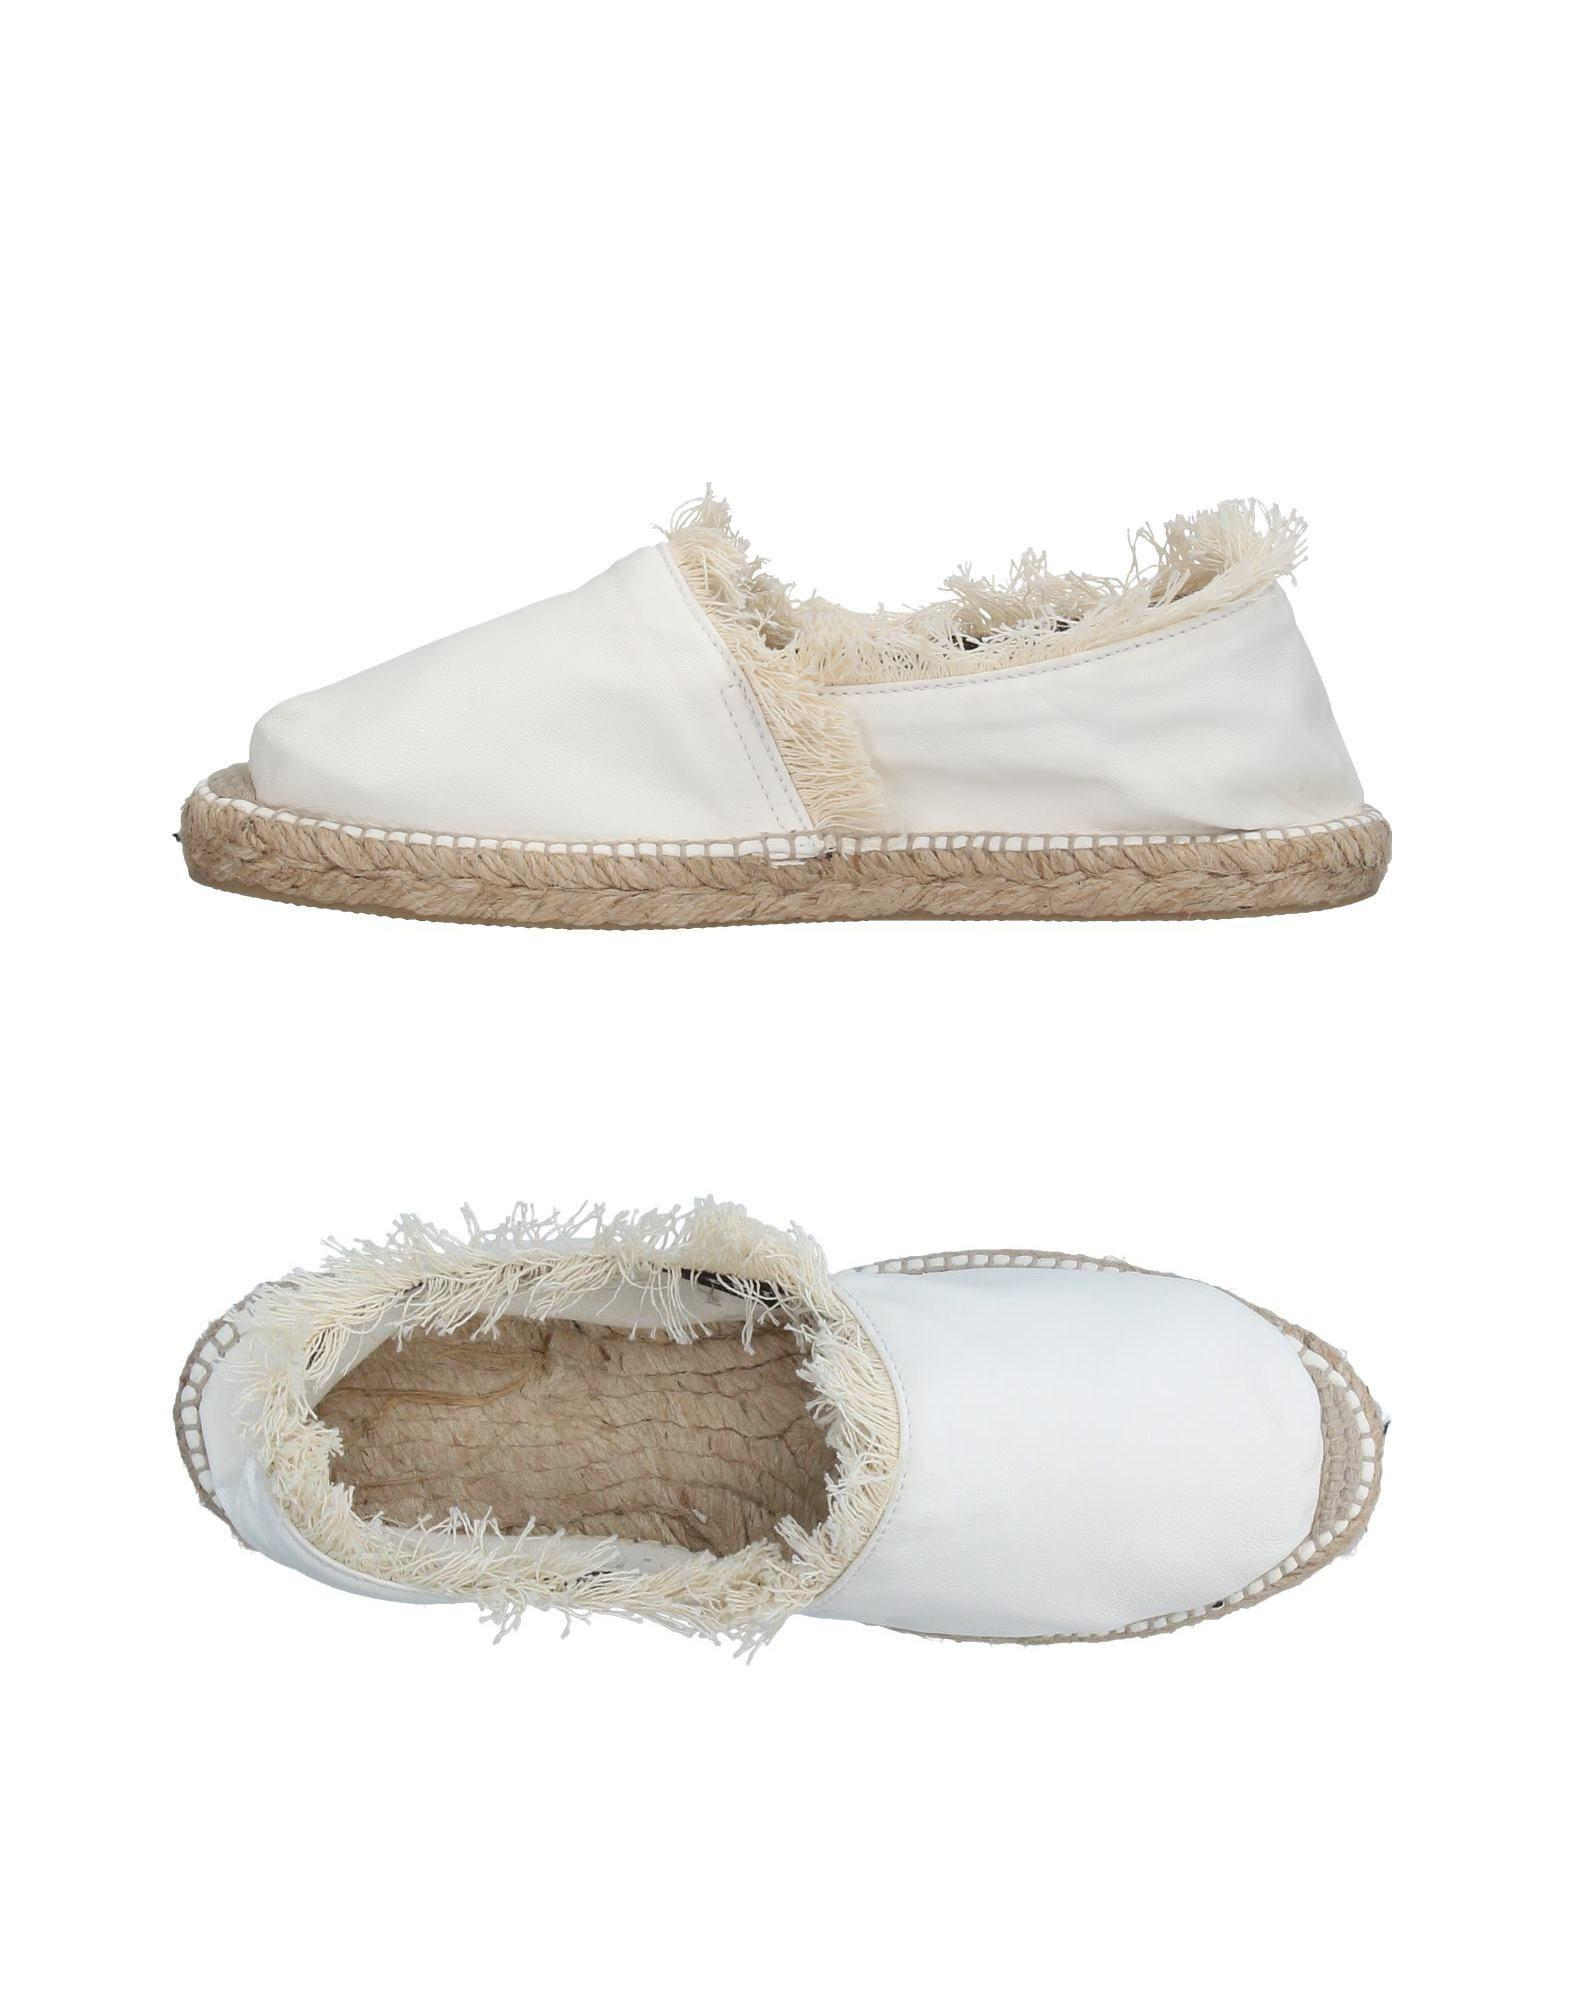 FOOTWEAR - Espadrilles Espadrilles And Collection Privee?